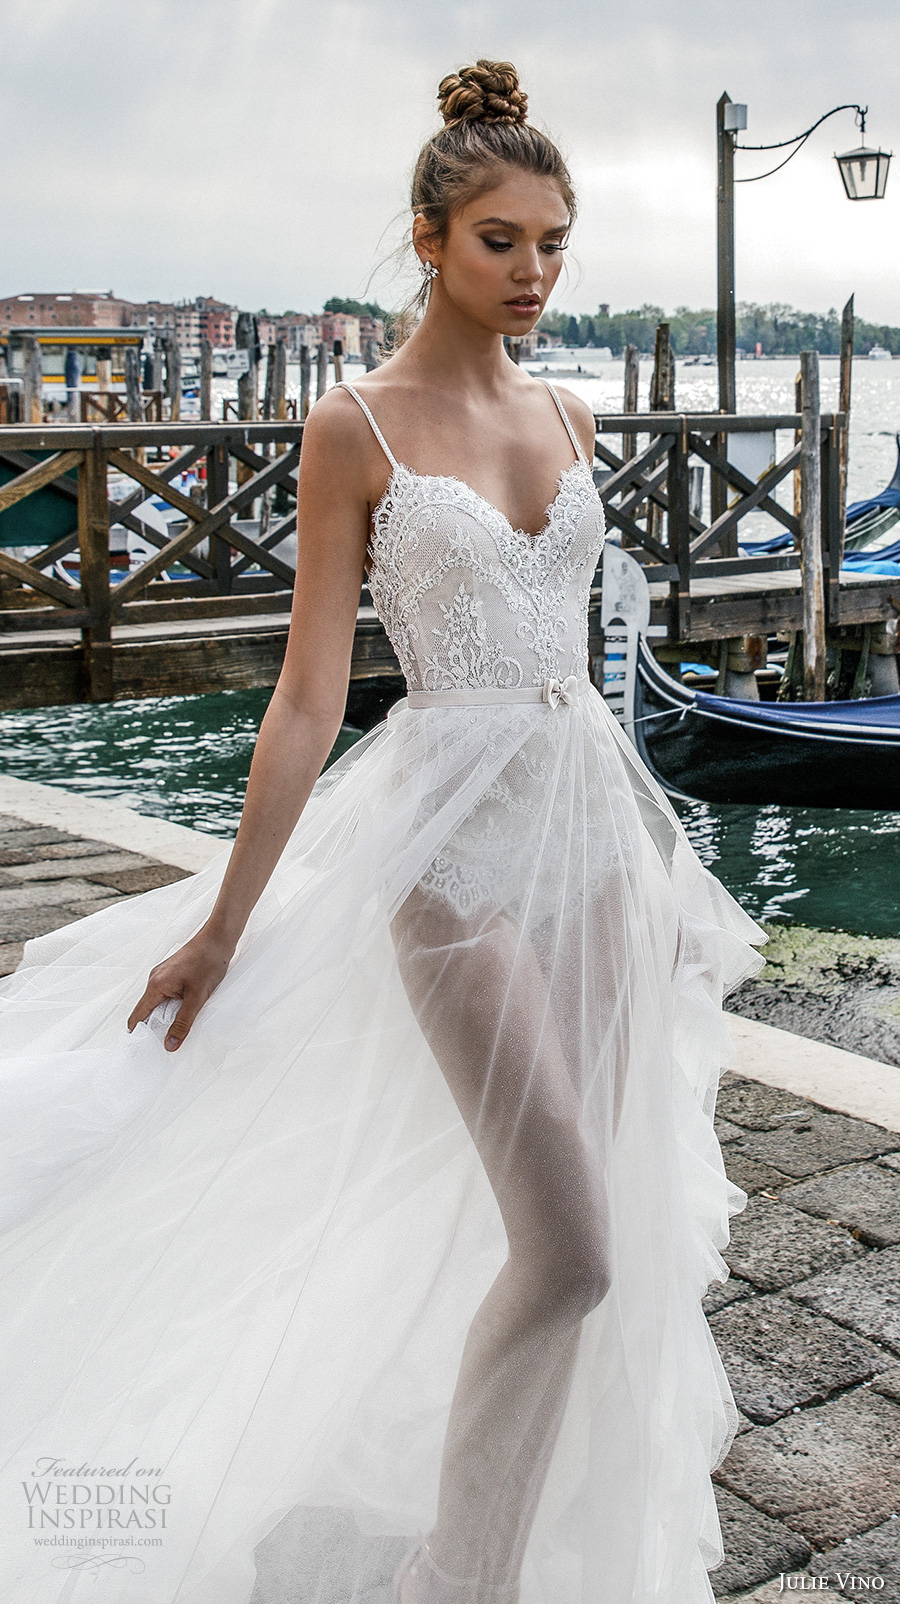 julie vino spring 2018 bridal spagetti strap sweetheart neckline heavily embellished bodice flowy tulle skirt romantic sexy a line wedding dress open scoop back chapel train (03) zv